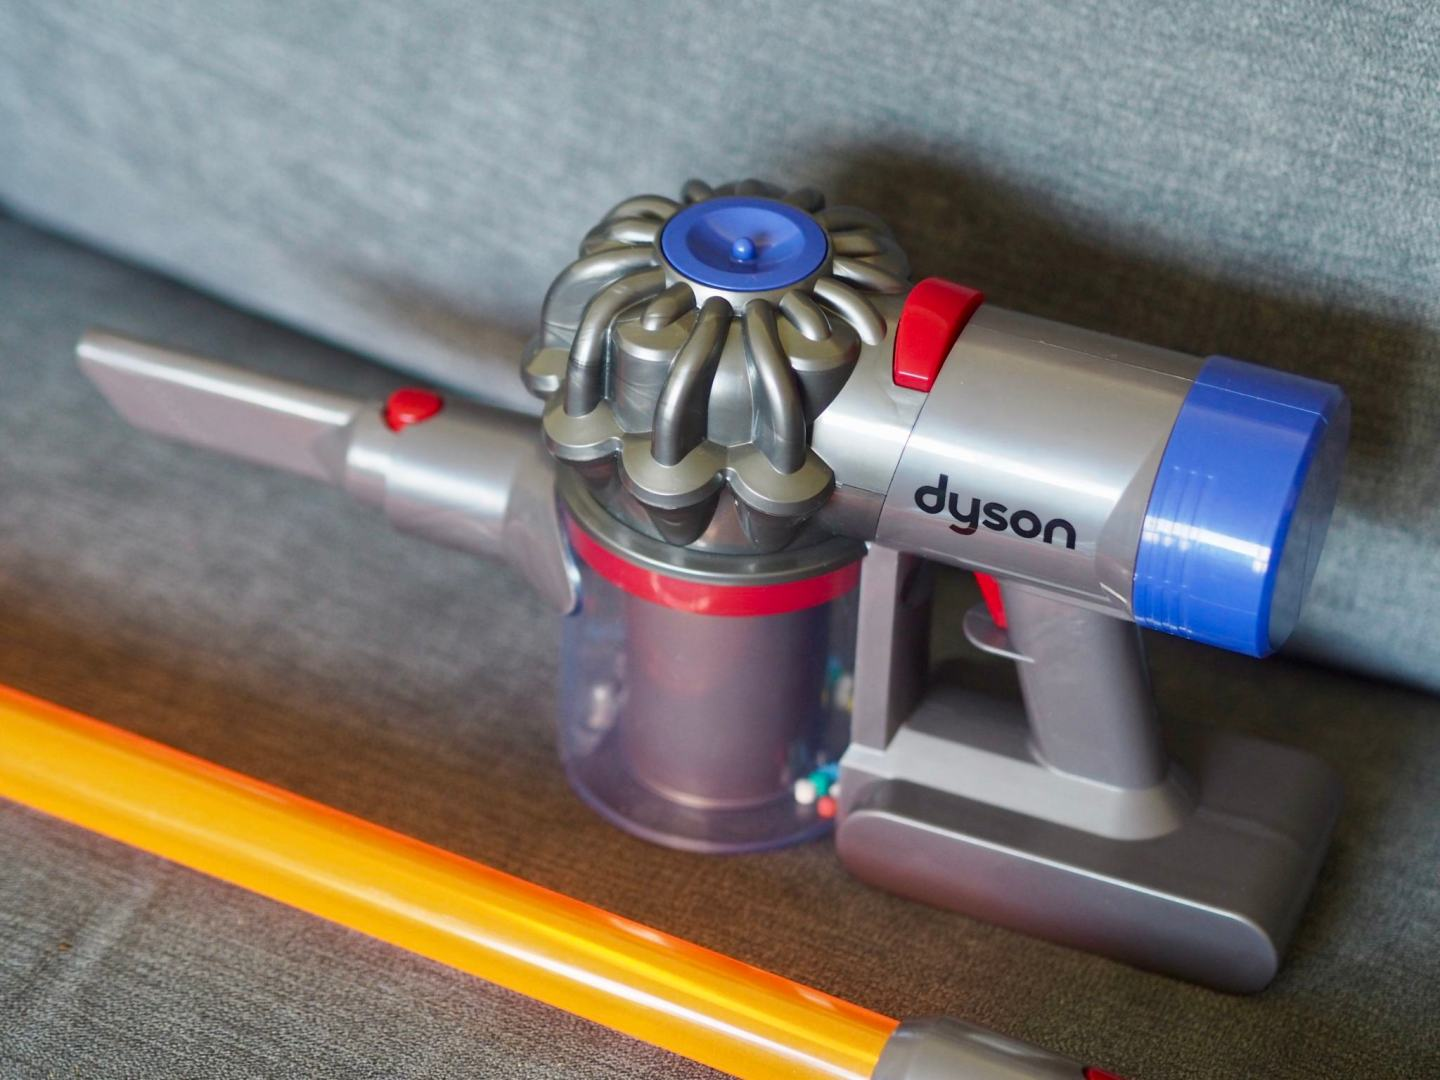 Casdon Toy Dyson Cord-free Vacuum Cleaner Review - toys for toddlers